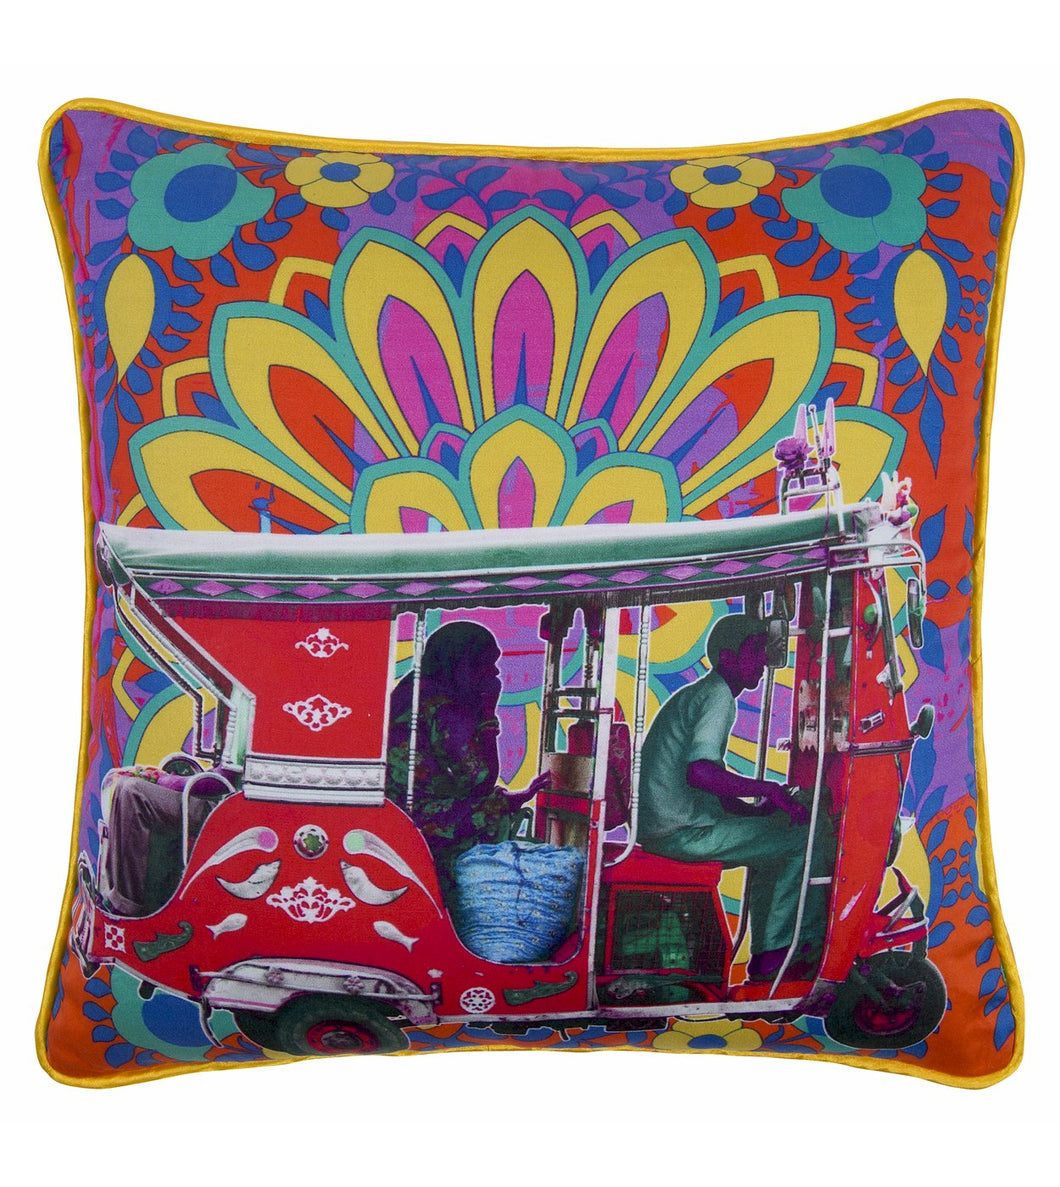 Scarlet Taxi Glaze Cotton Cushion Cover 16x16 Inches